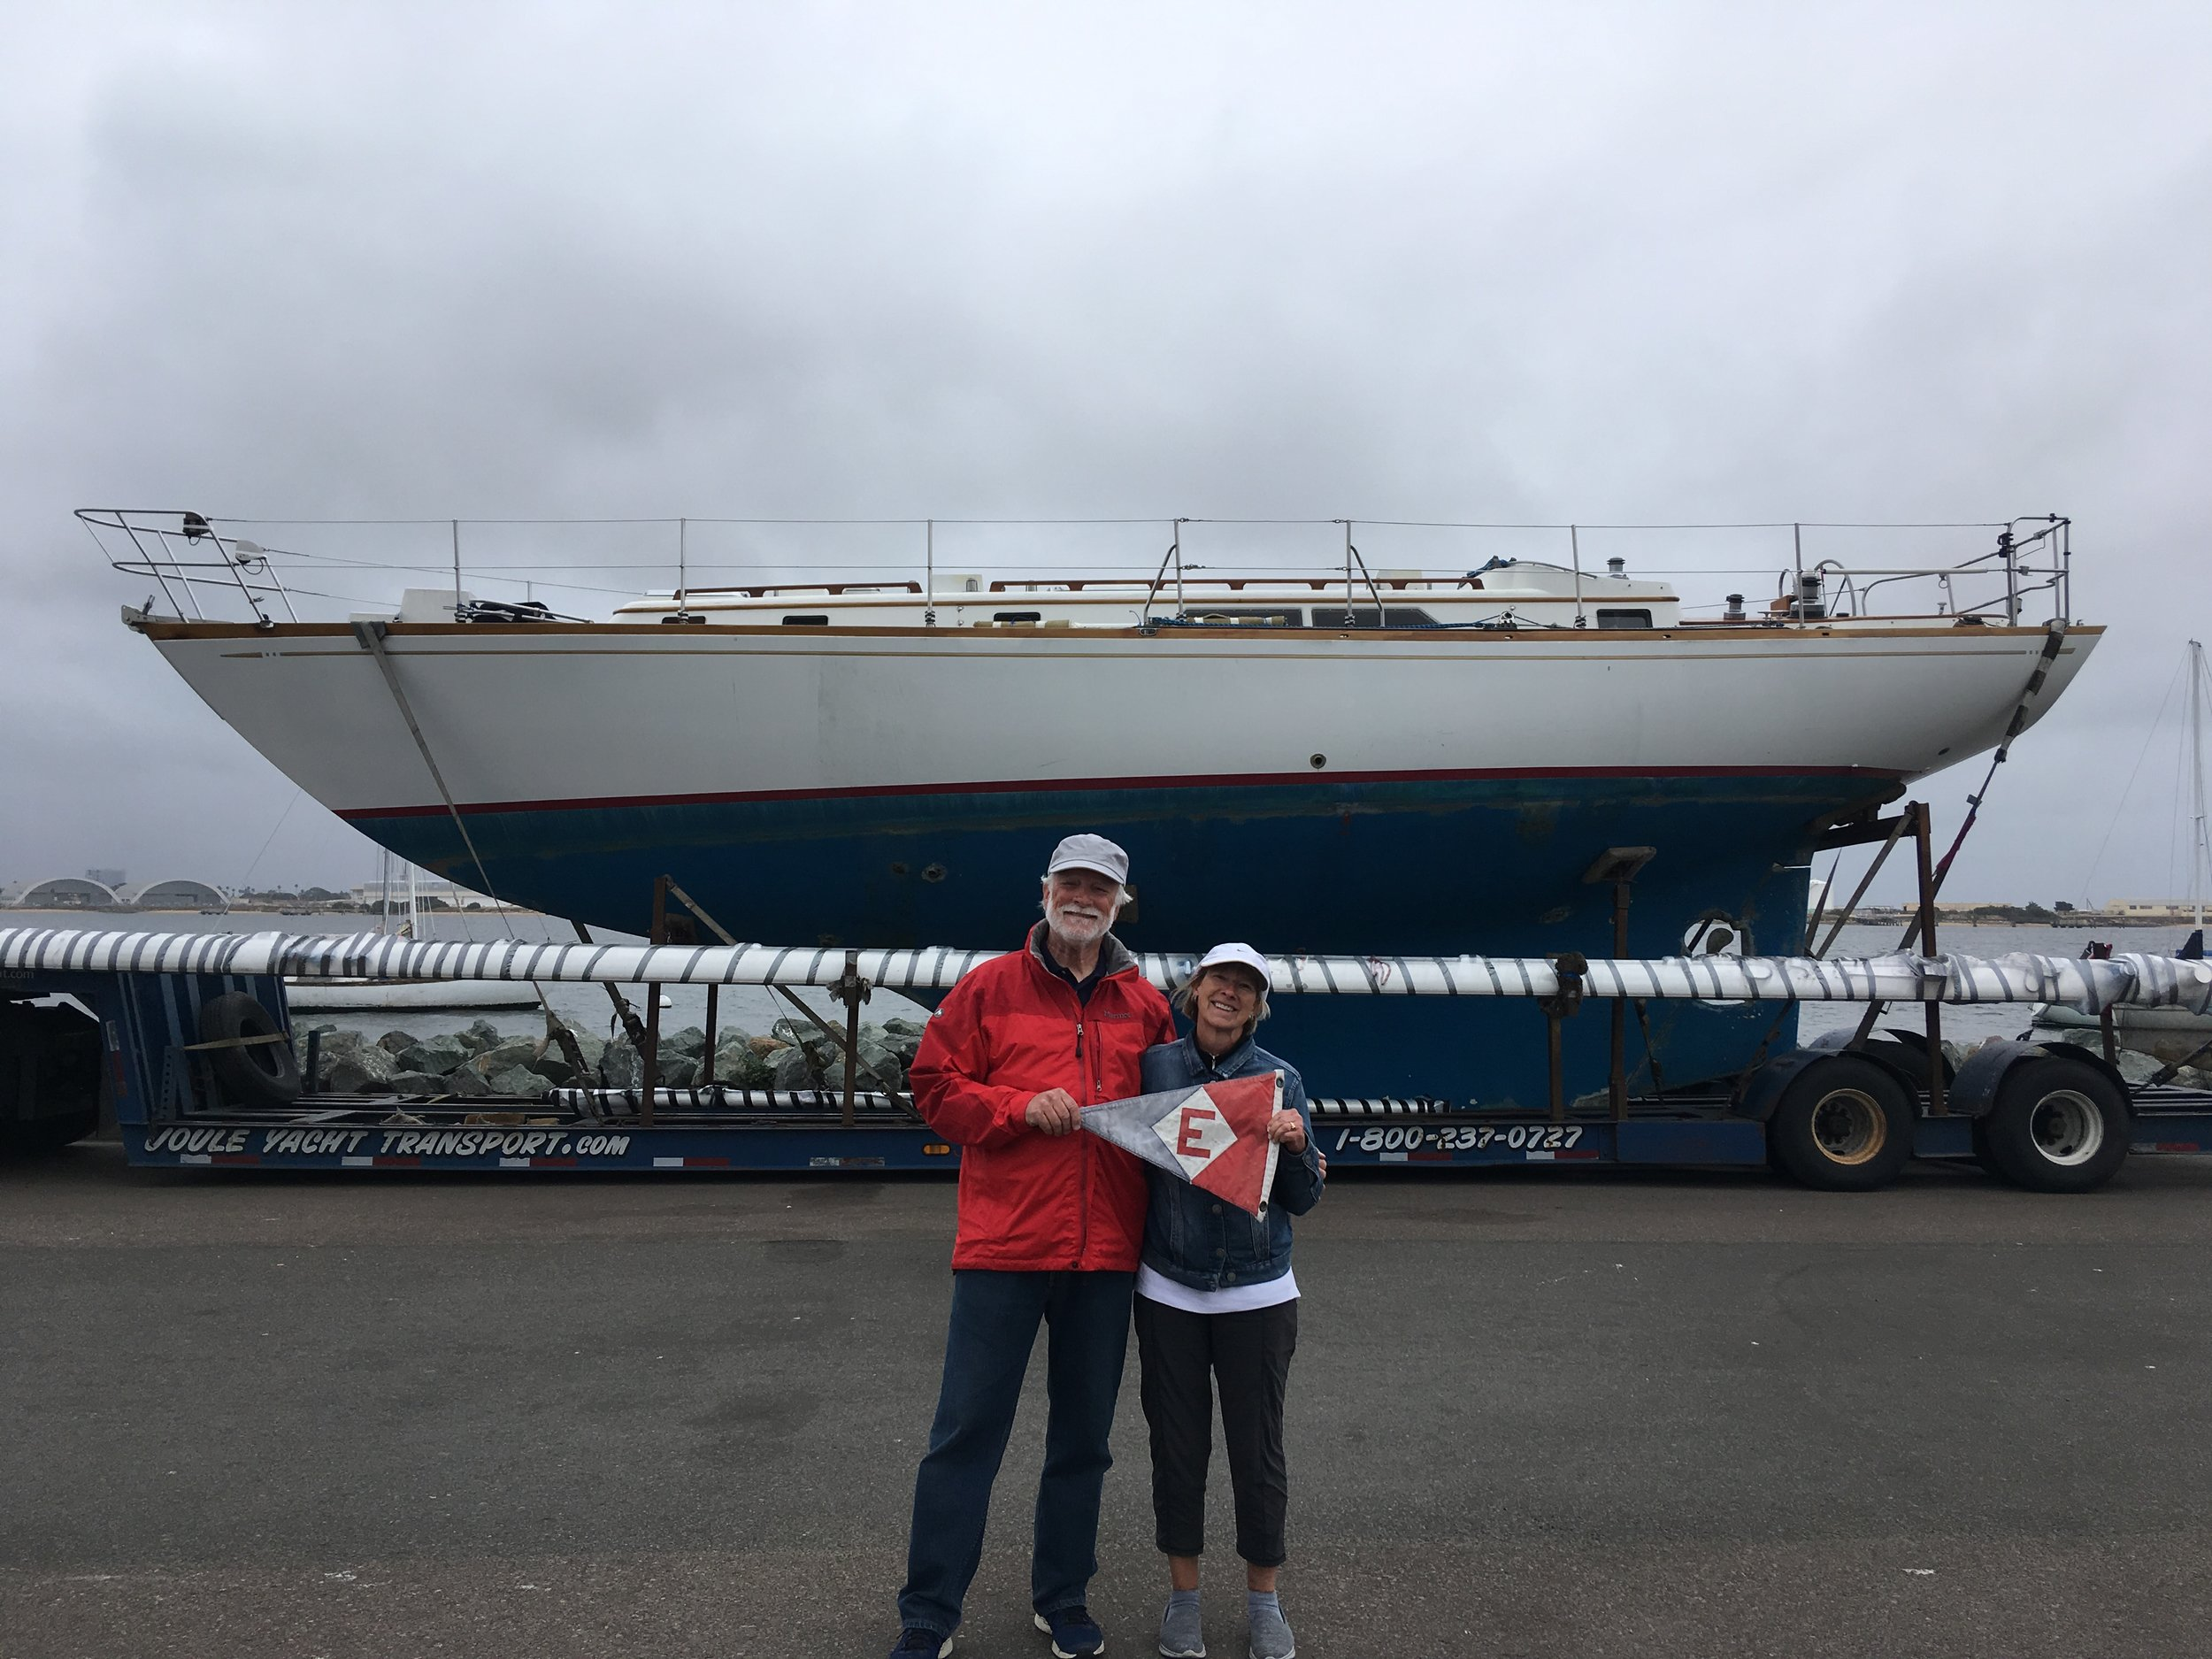 Ken and Chris Emmes in San Diego, CA at the start of the journey to take their new boat to Port Townsend, WA.